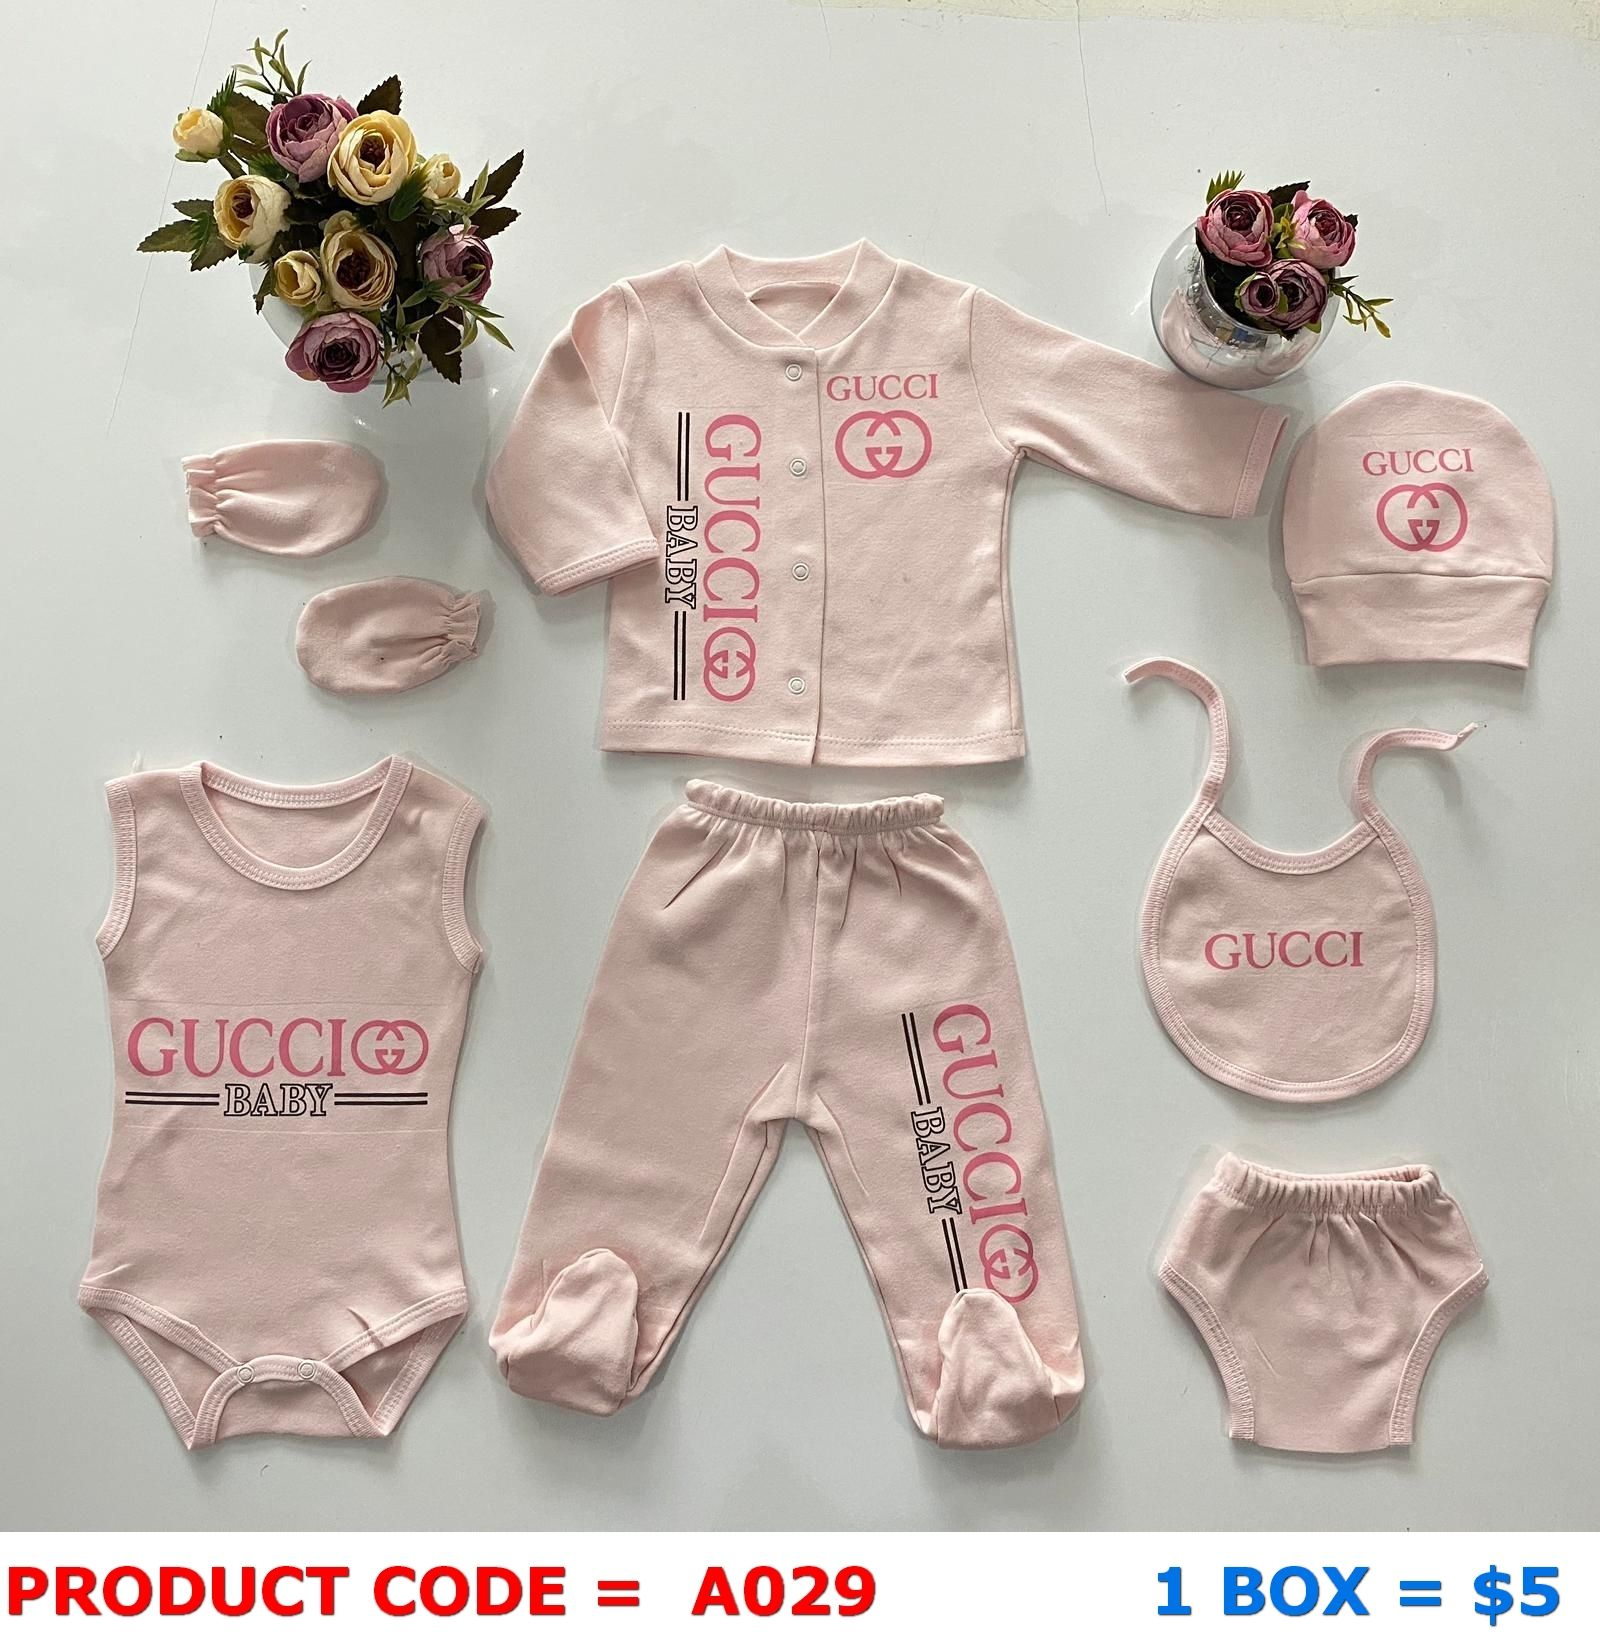 Baby Kids Clothes Wholesale: baby dress gift box sets - wholesale